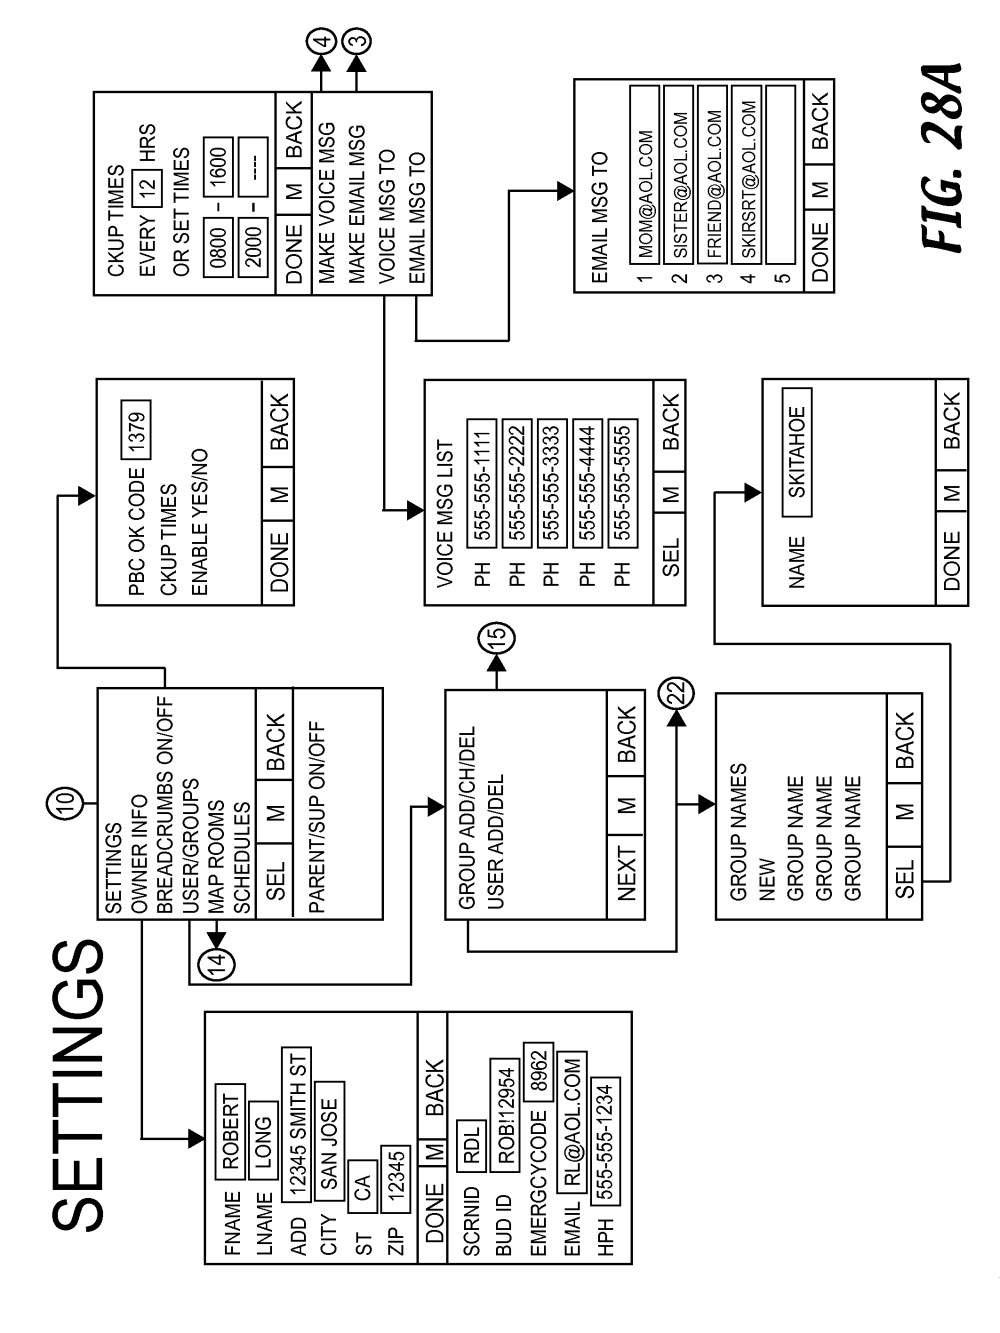 medium resolution of us20140148135a1 location sharing and tracking using mobile phones or other wireless devices google patents